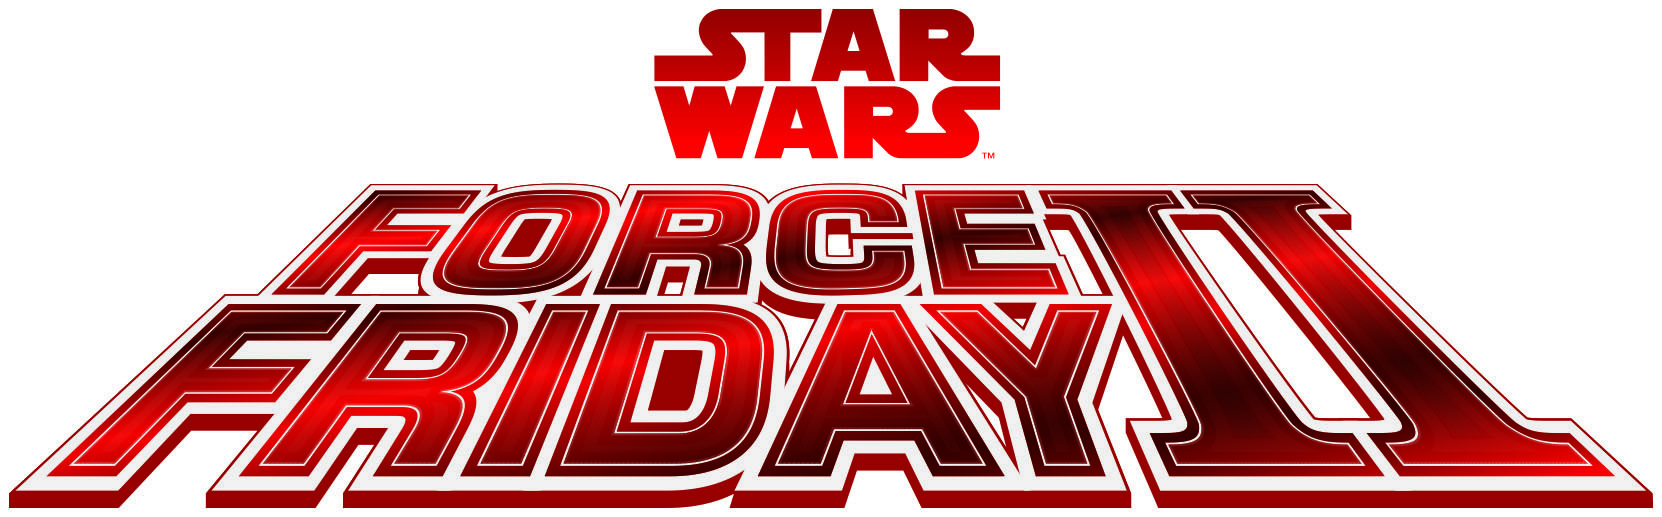 Star Wars Force Friday II